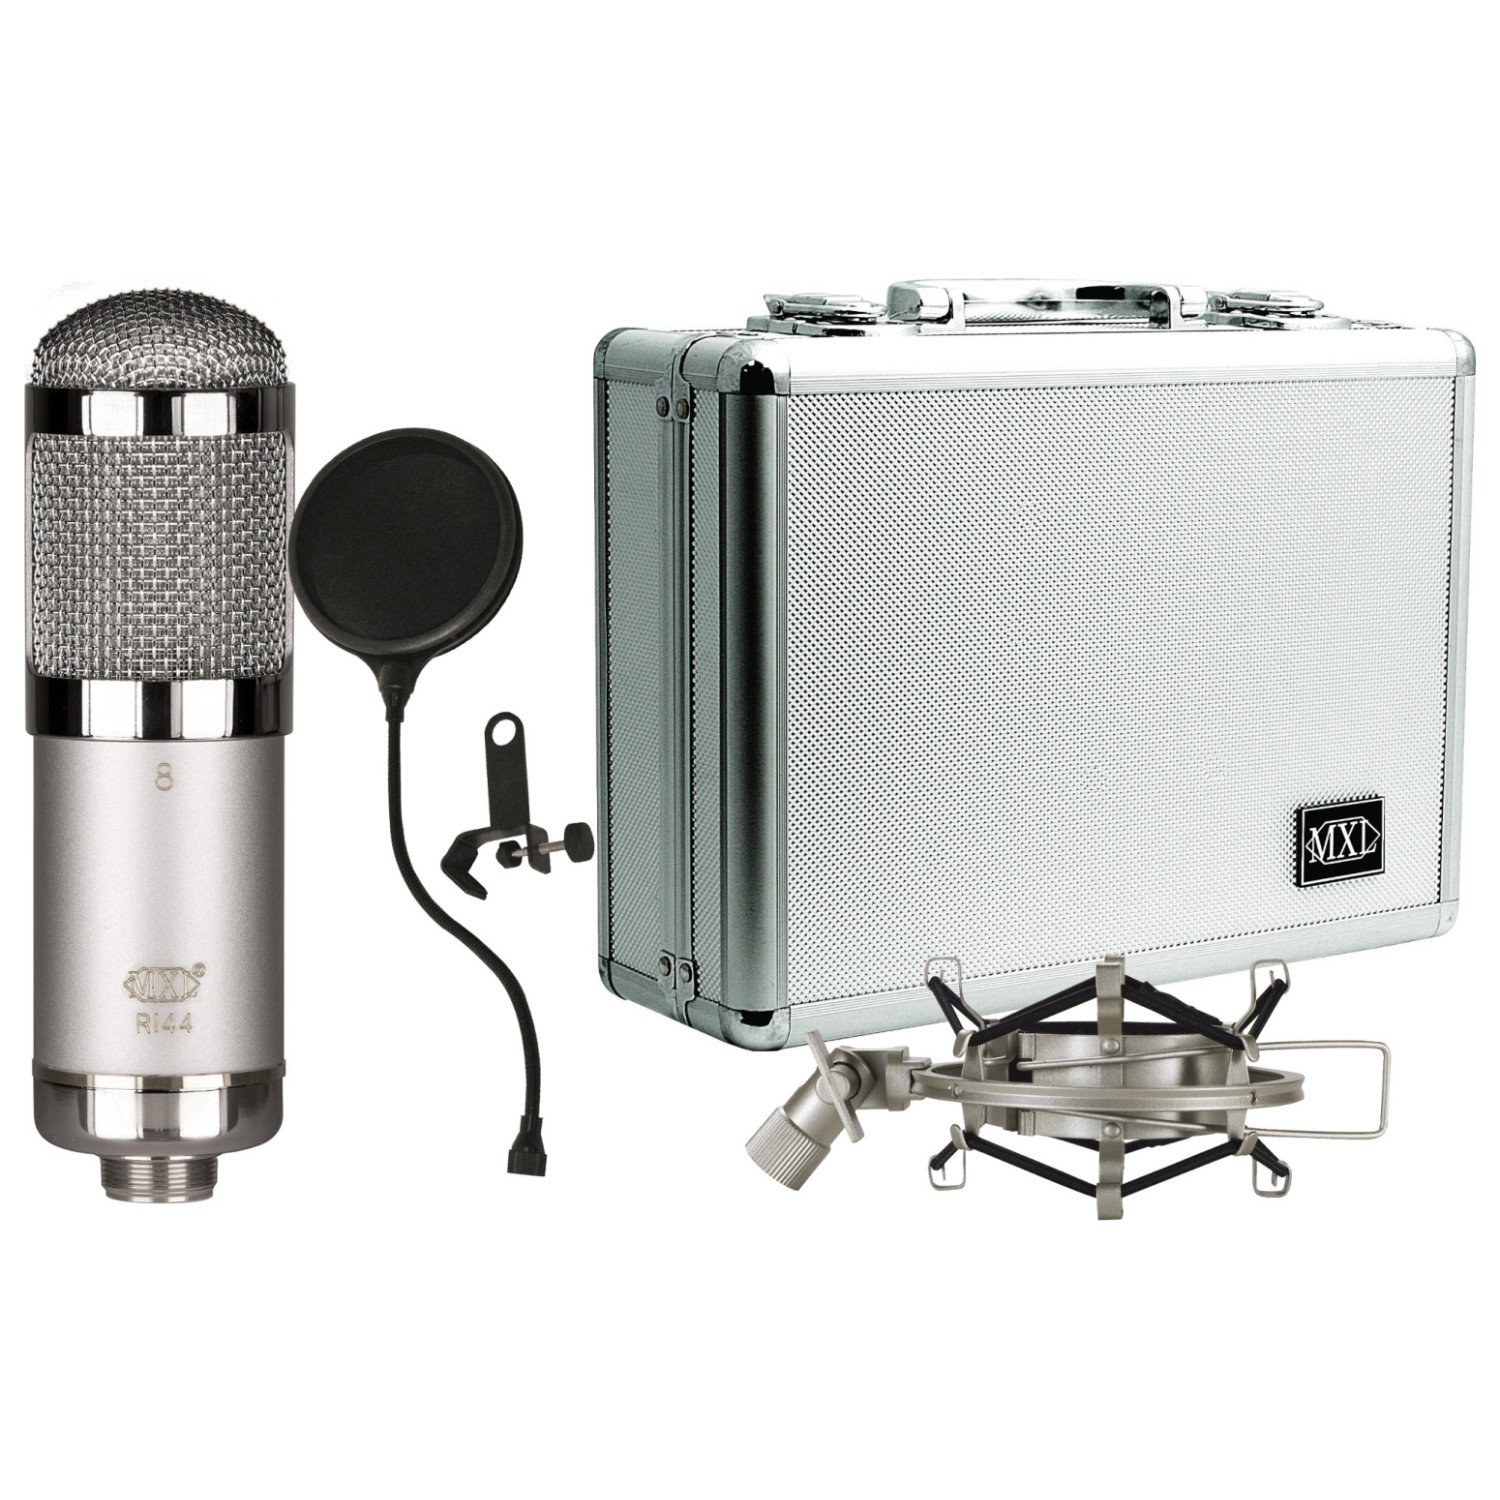 MXL R144 HE Ribbon Microphone Heritage Edition with Case, Shock Mount, and Pop Filter by MXL